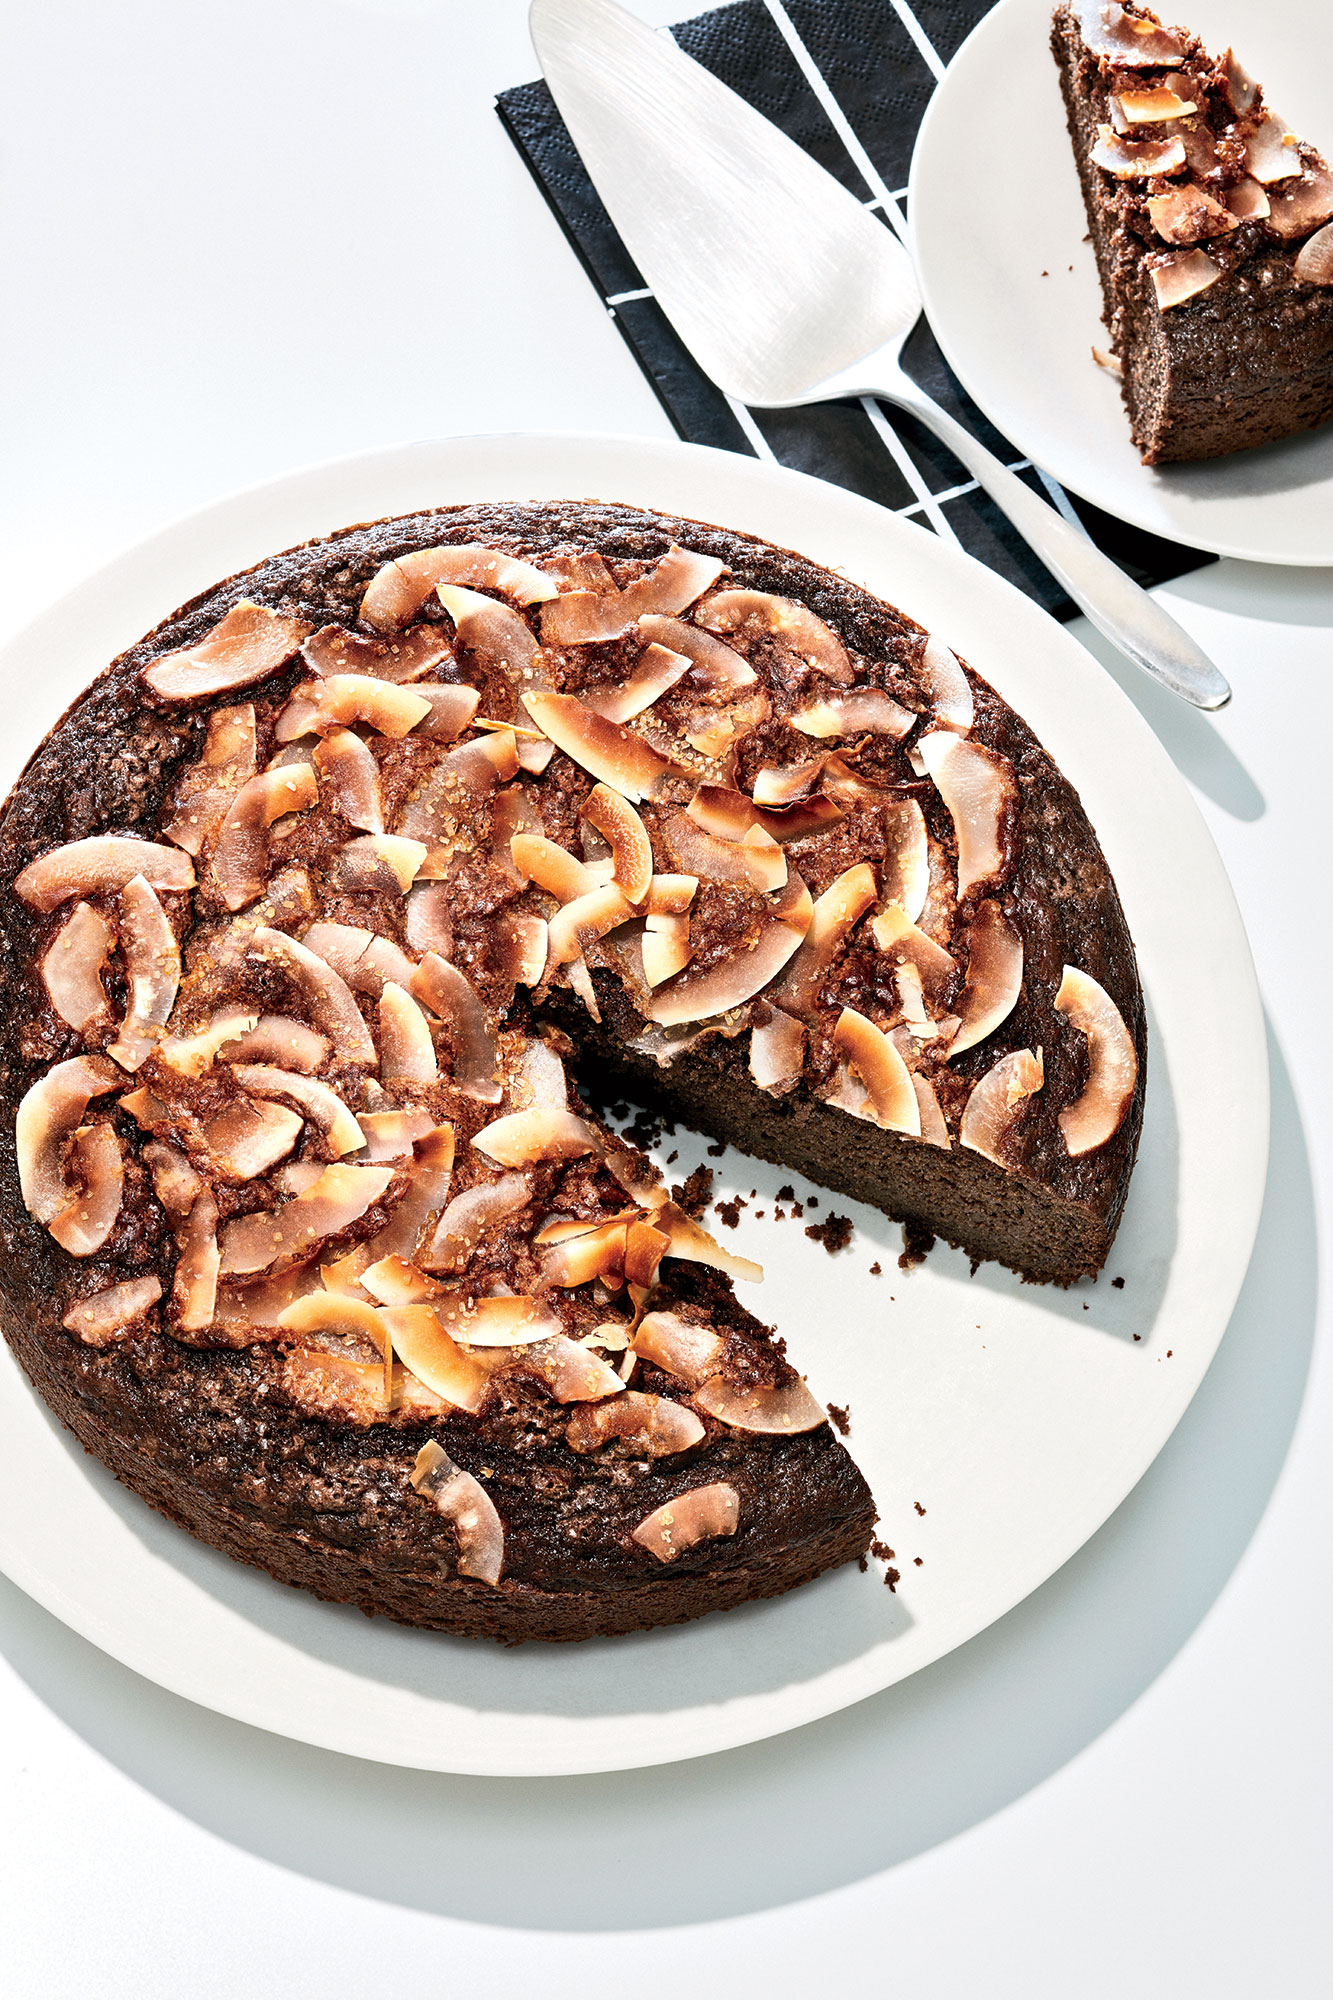 Brown Butter Cake with Cocoa